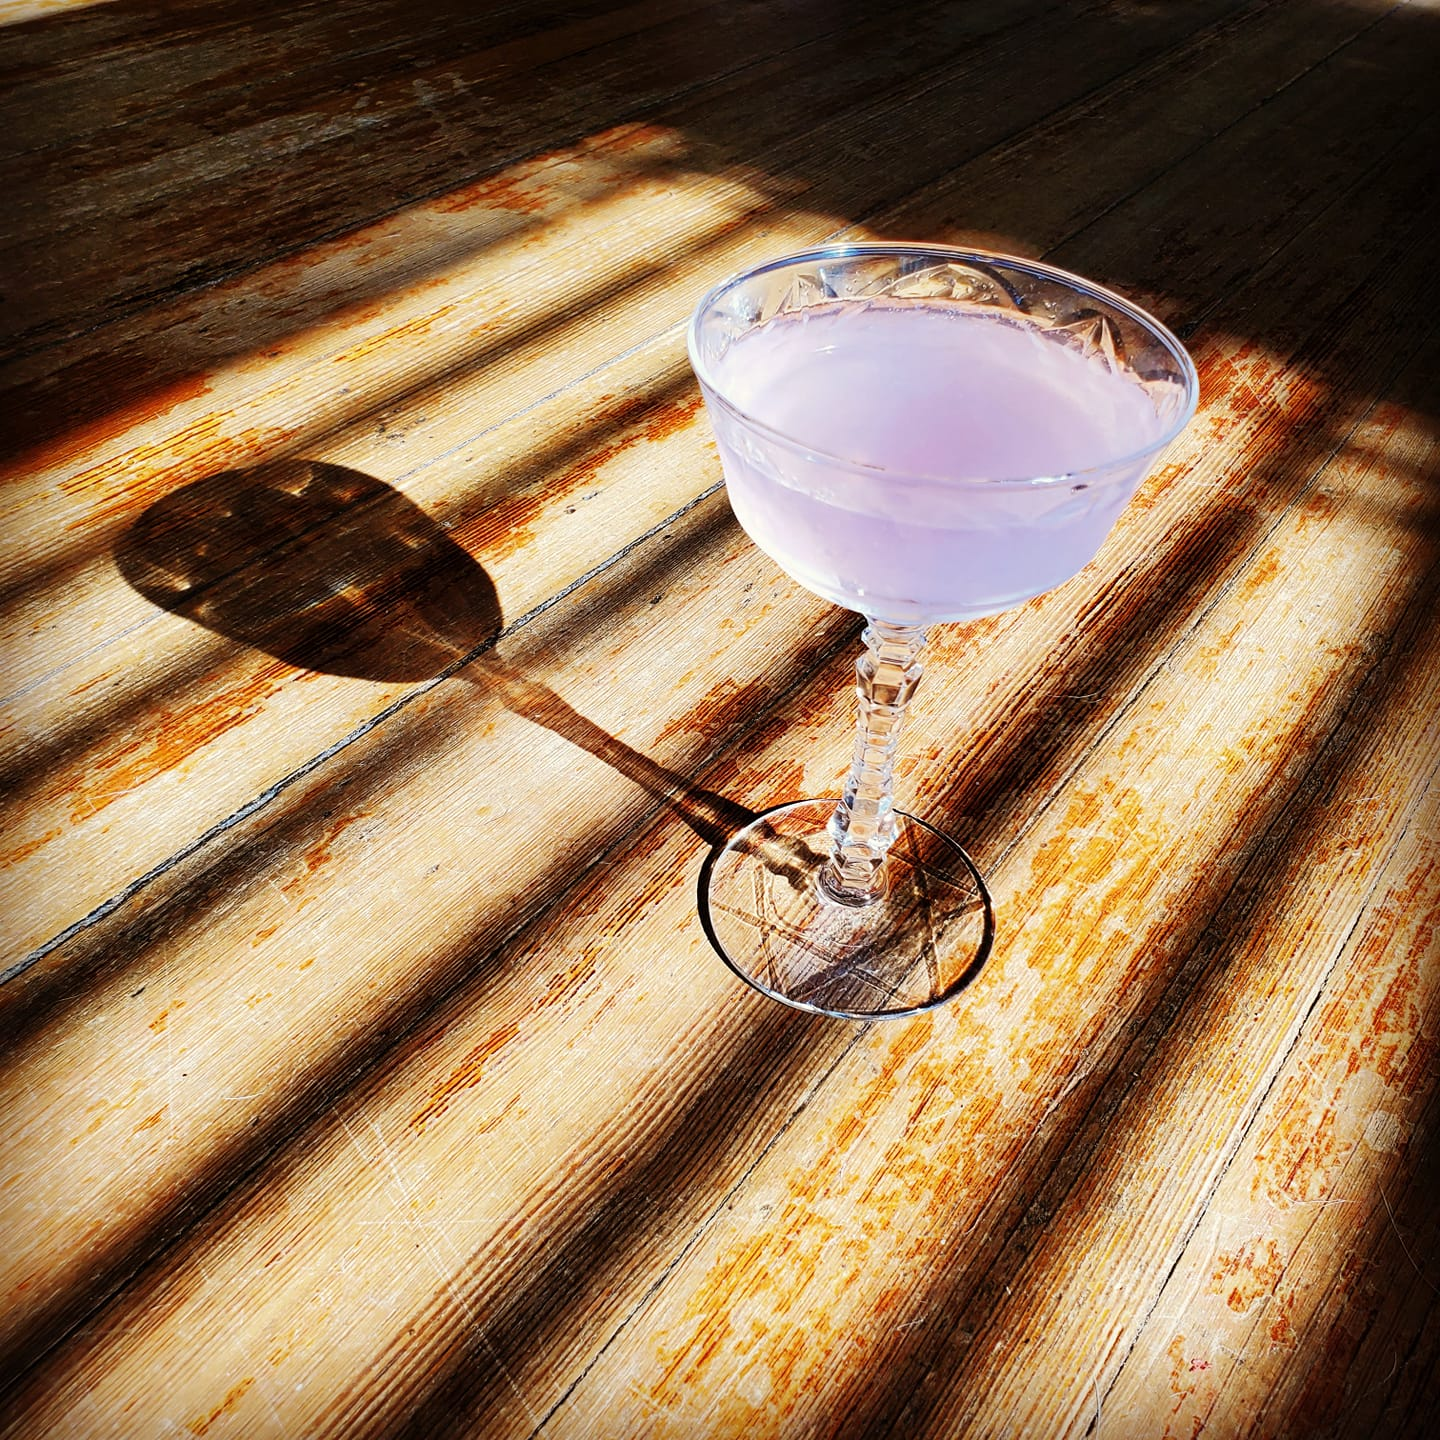 A single cocktail on a wooden deck its shadow to the left made by bartender Tiffanie Barriere who provides history lessons with every cocktail she serves